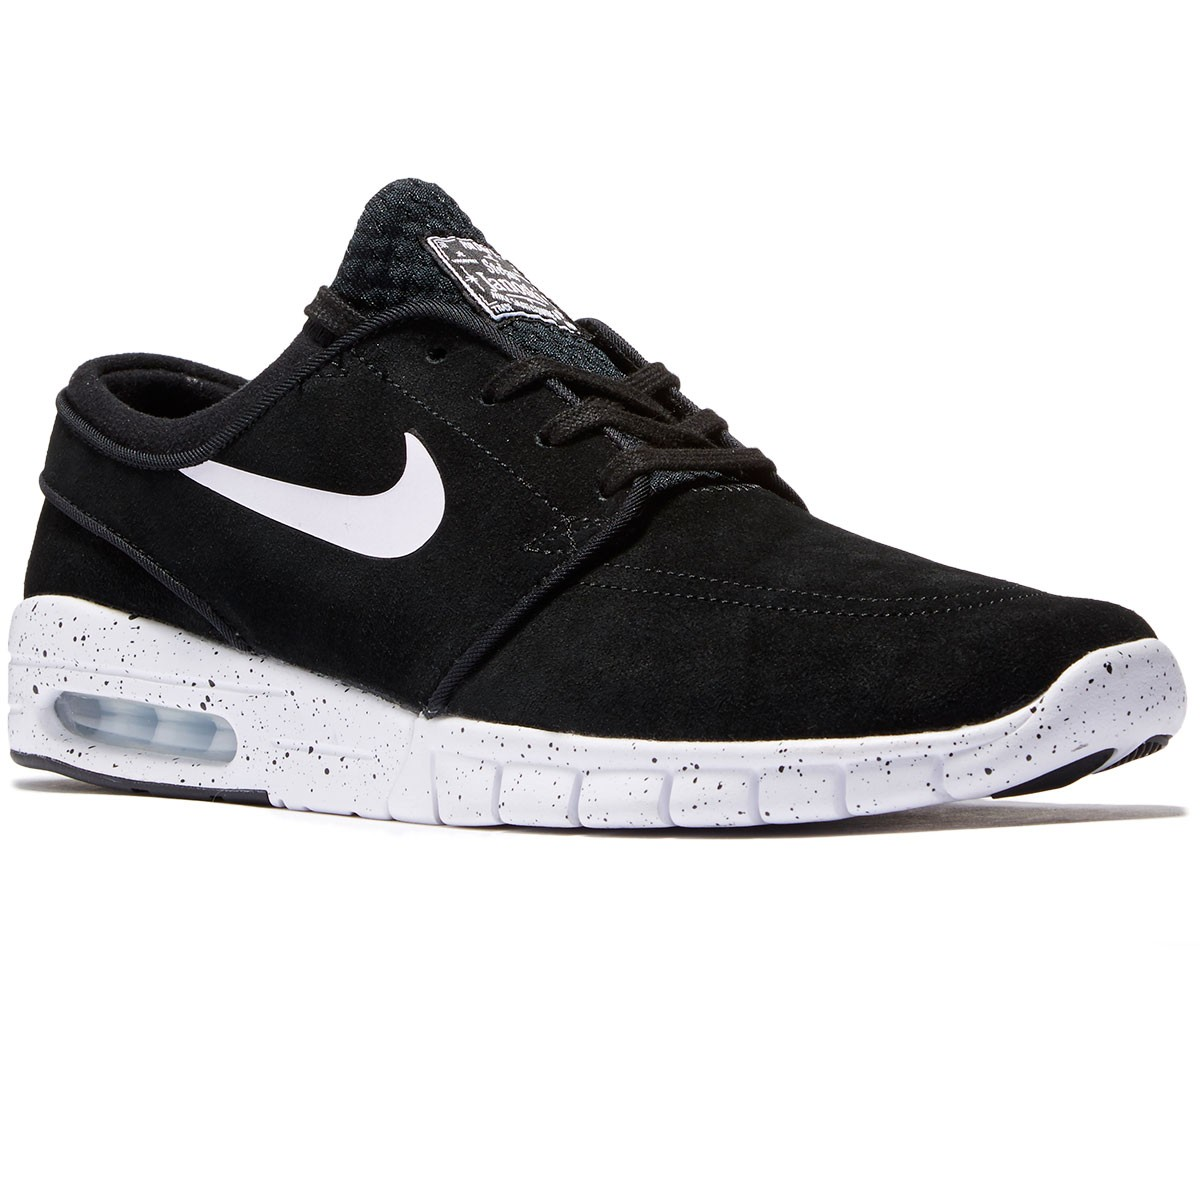 nike stefan janoski max l shoes. Black Bedroom Furniture Sets. Home Design Ideas